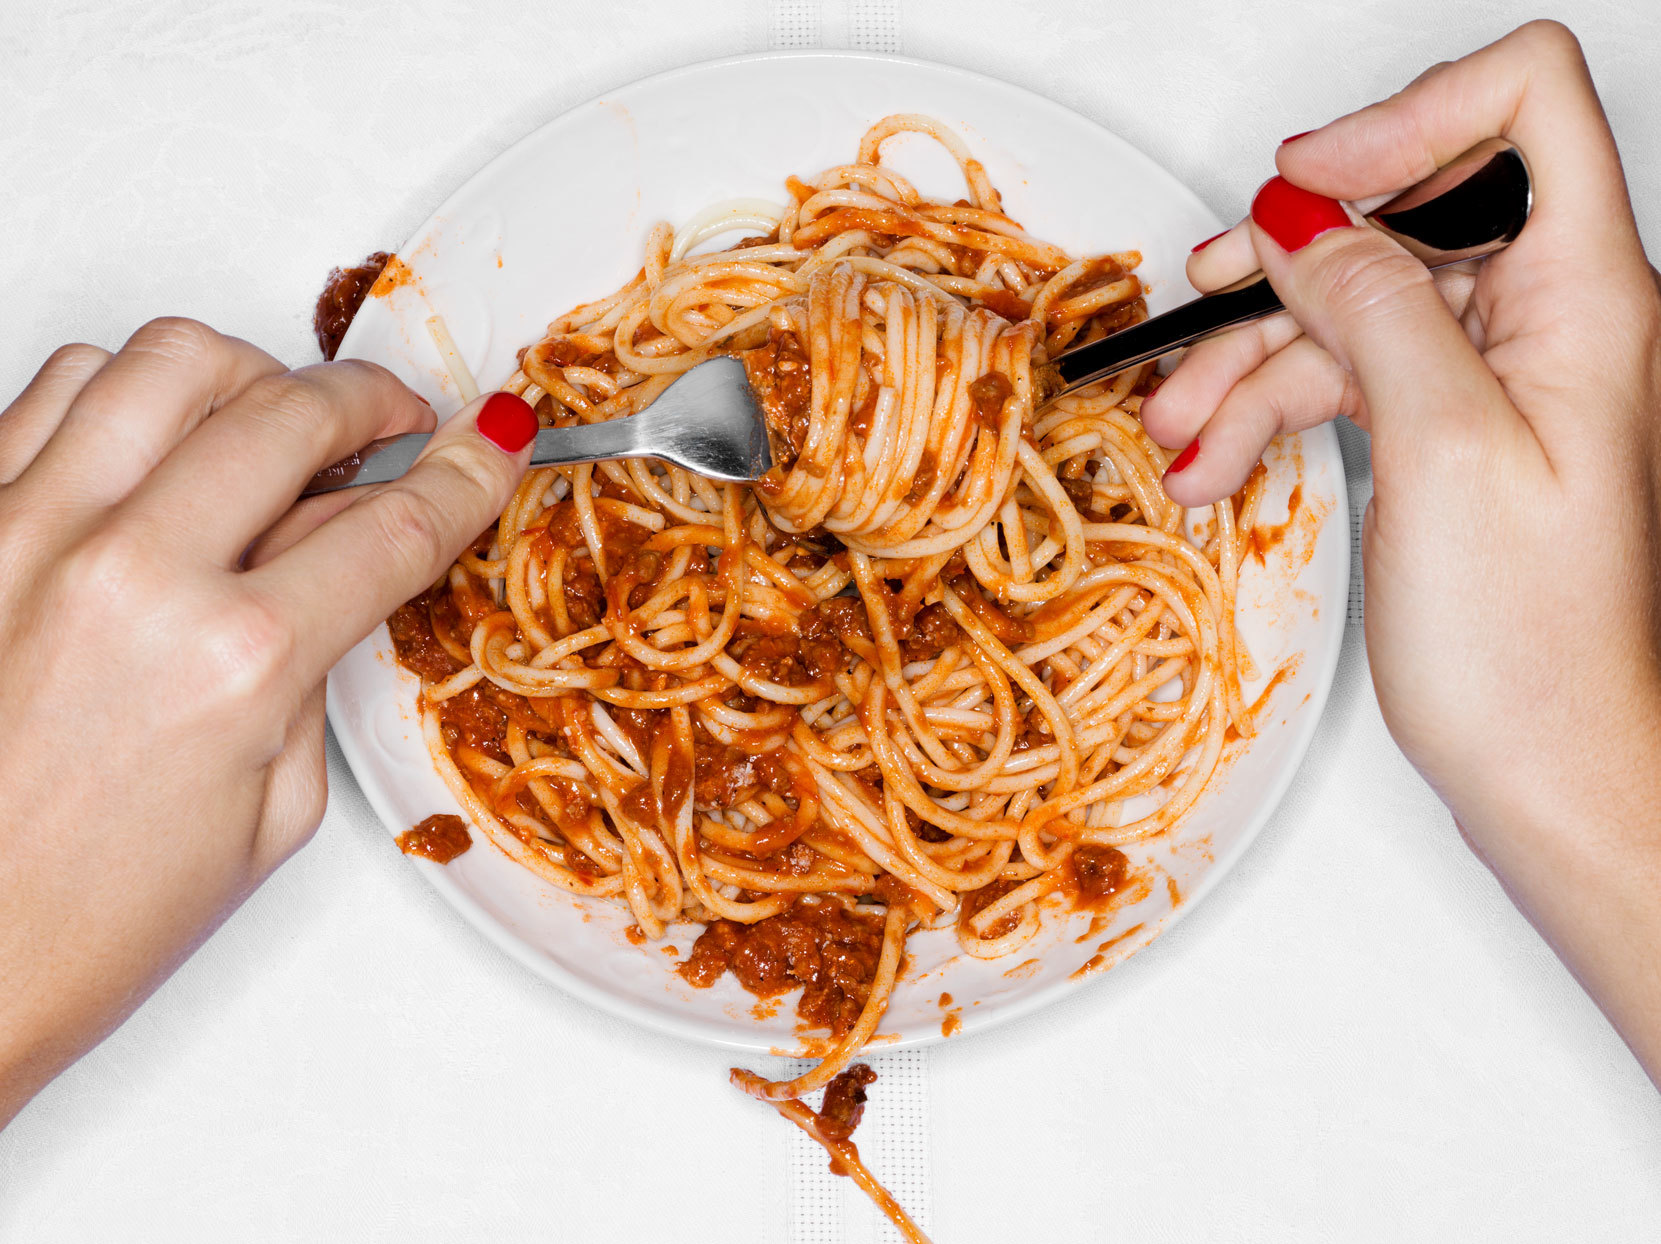 two hands eating plate of spaghetti